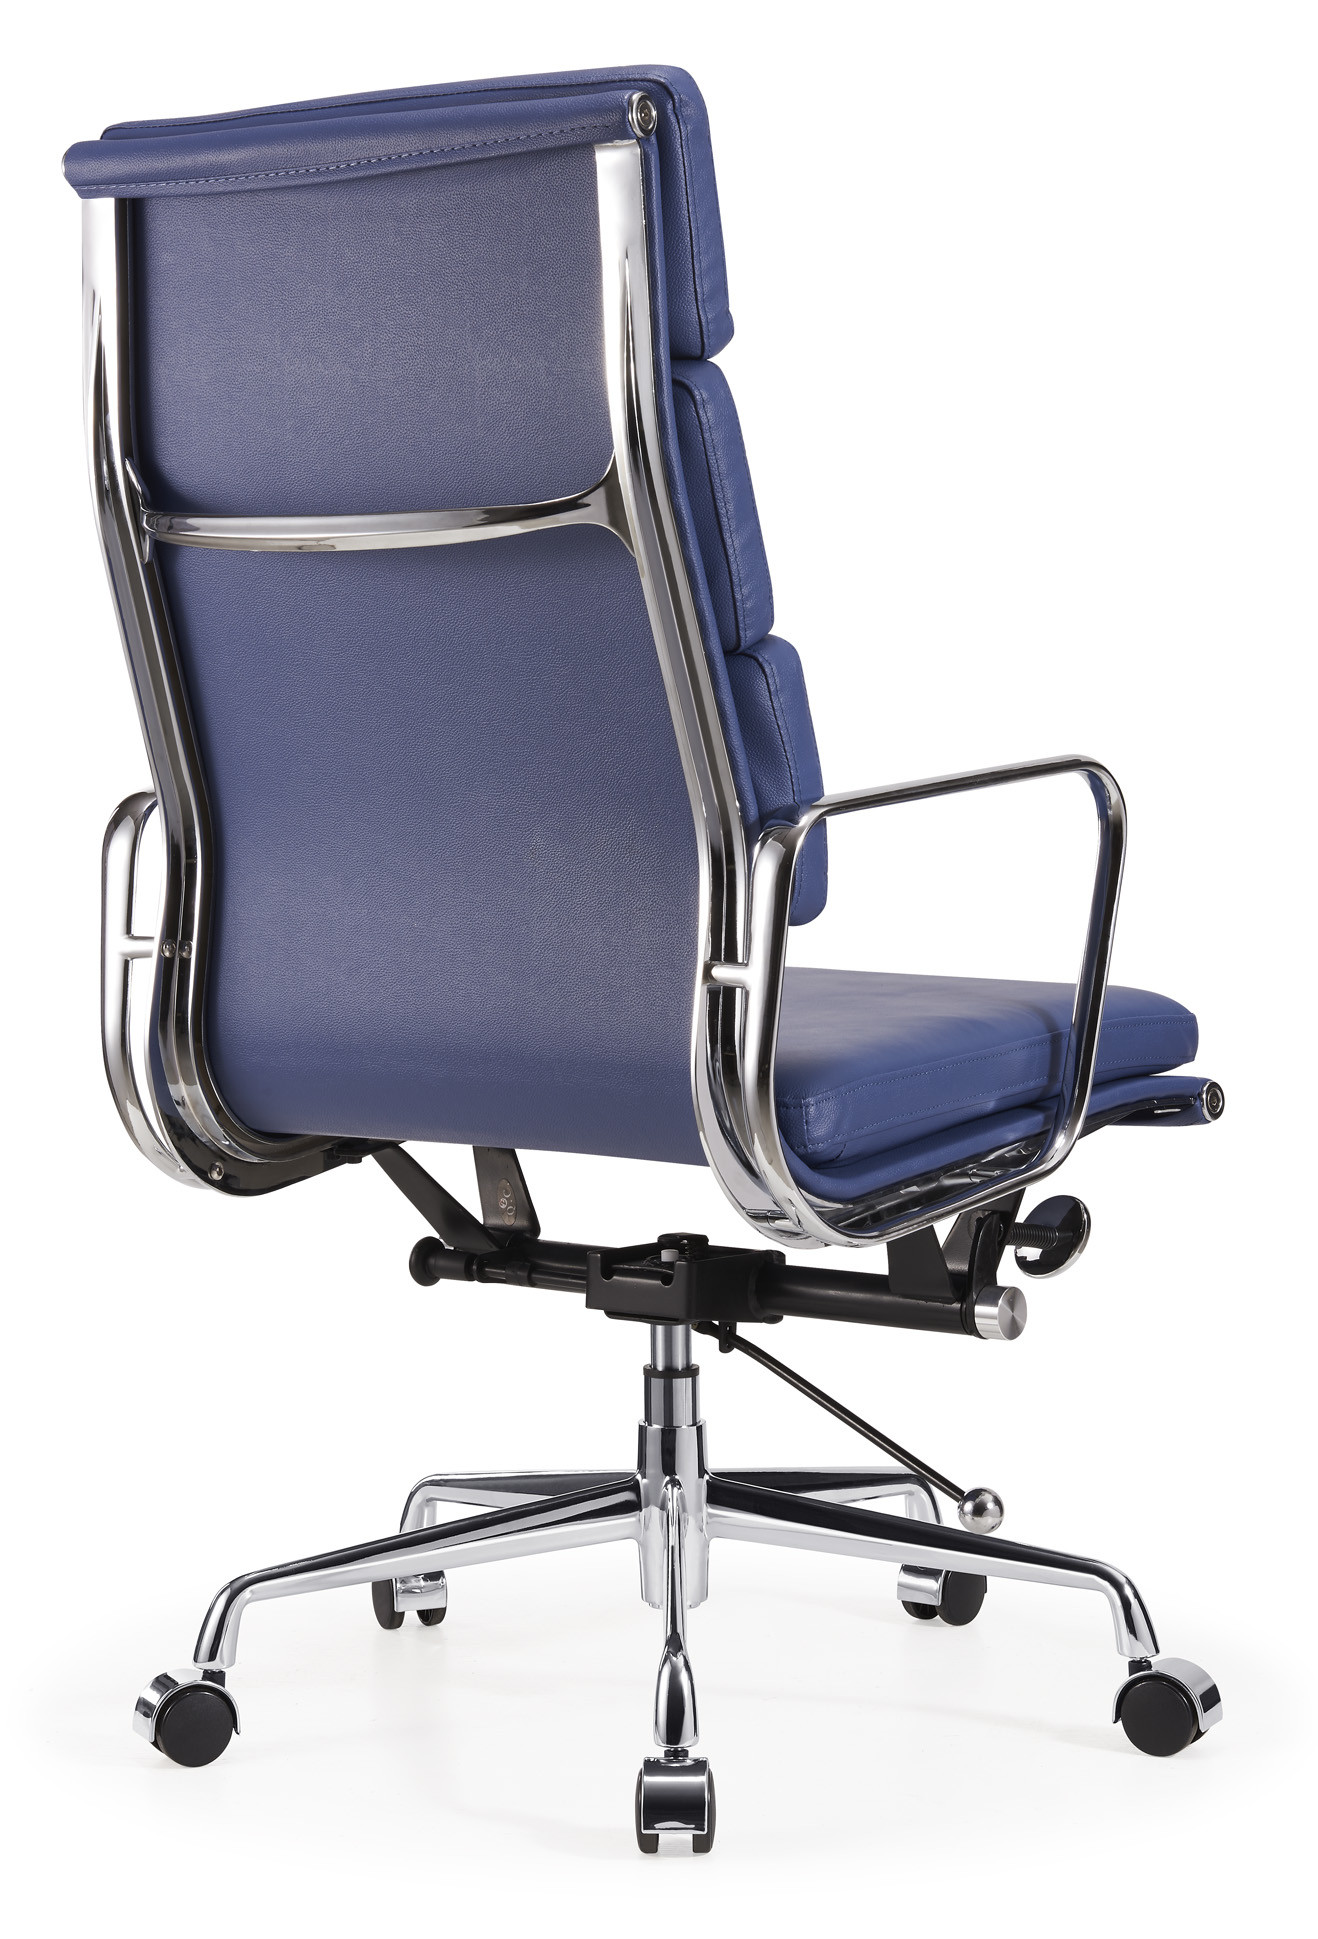 business office furniture chairs